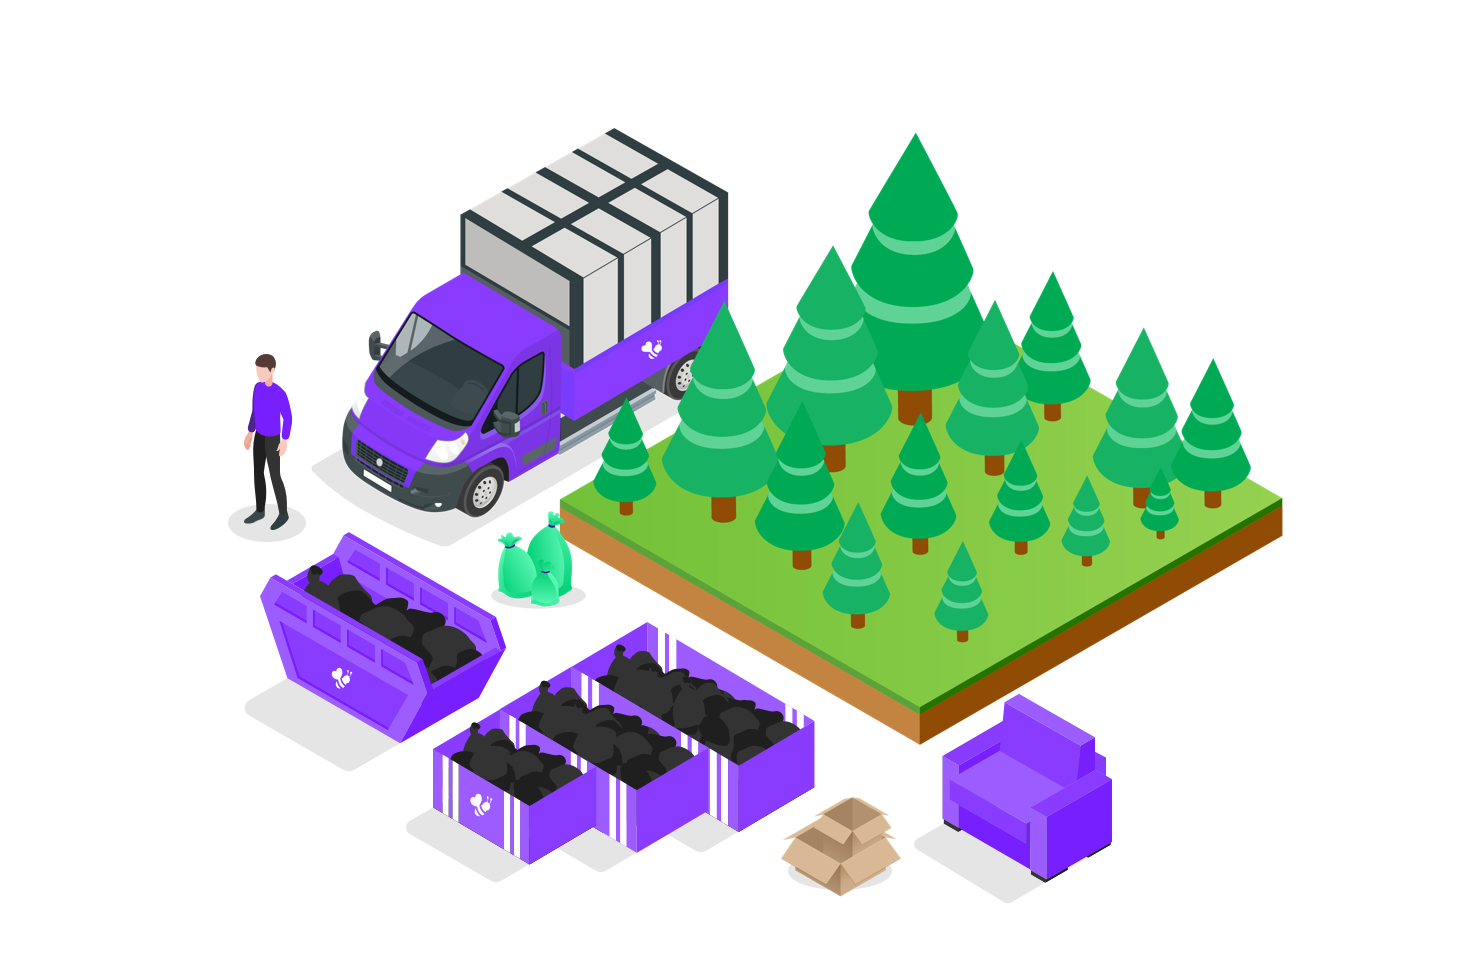 waste removal with trees graphic